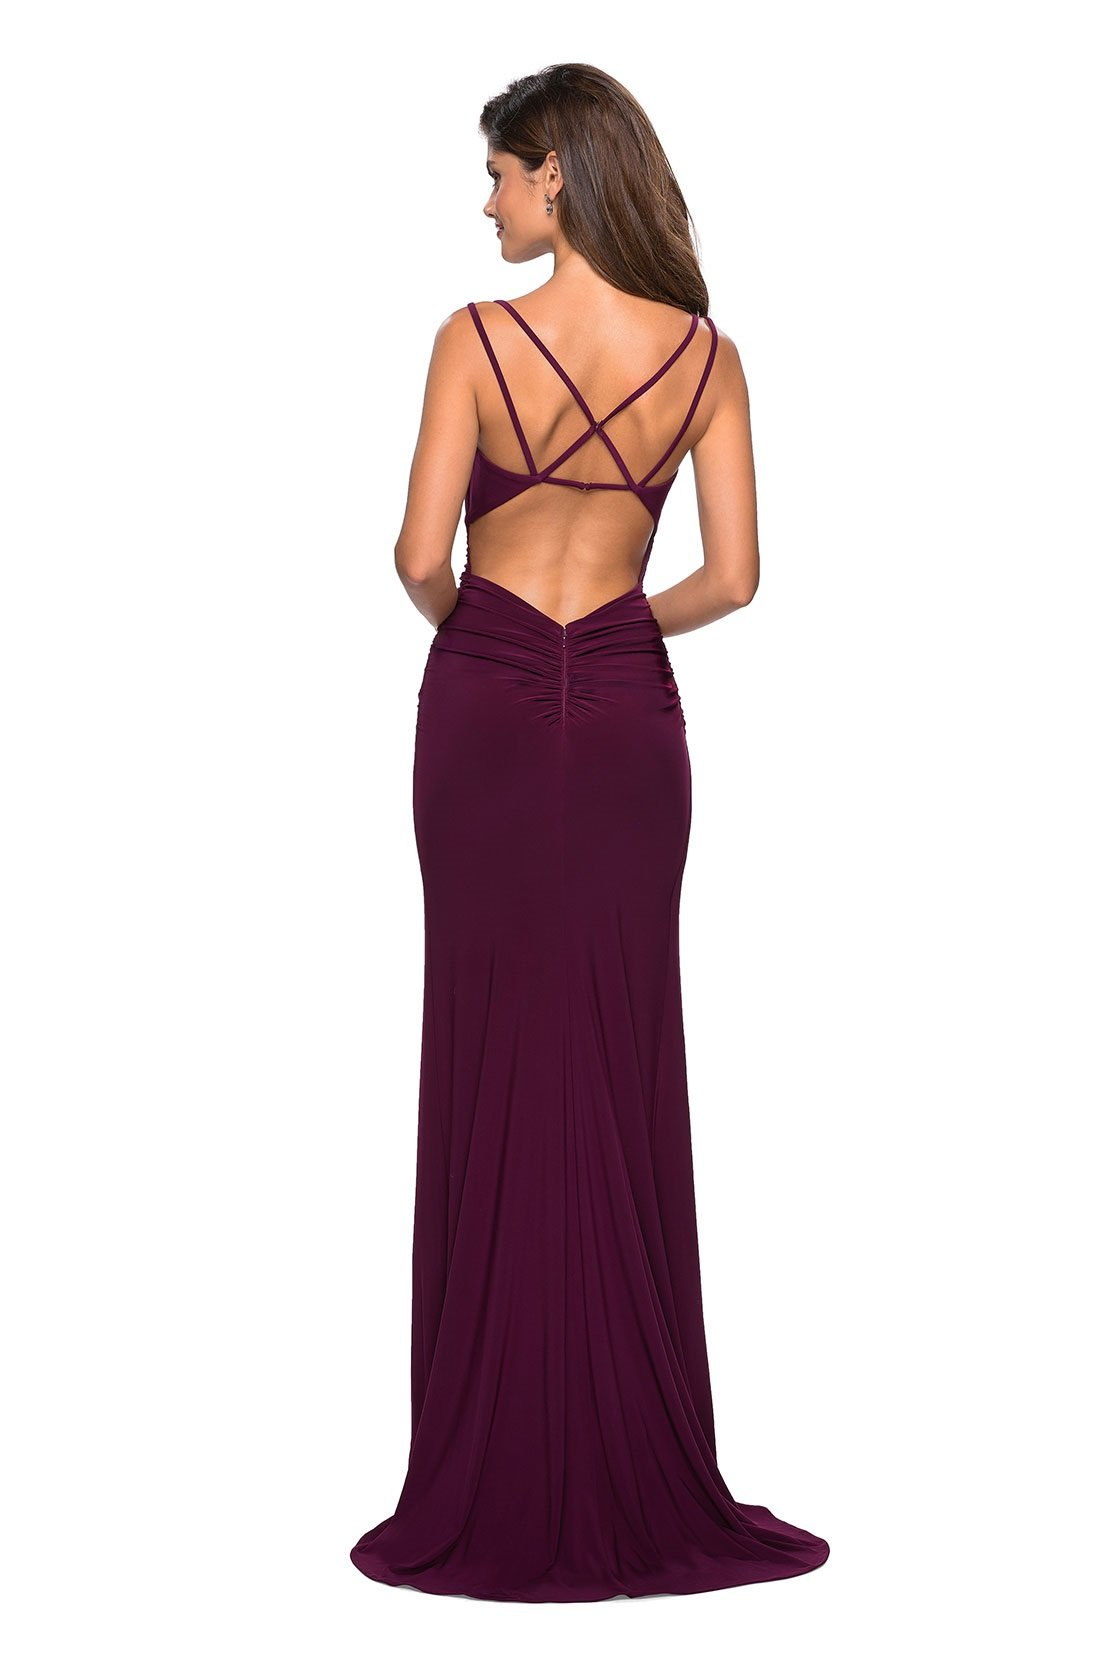 La Femme - Plunging Sweetheart Ruched High Slit Gown 27564 In Purple and Red